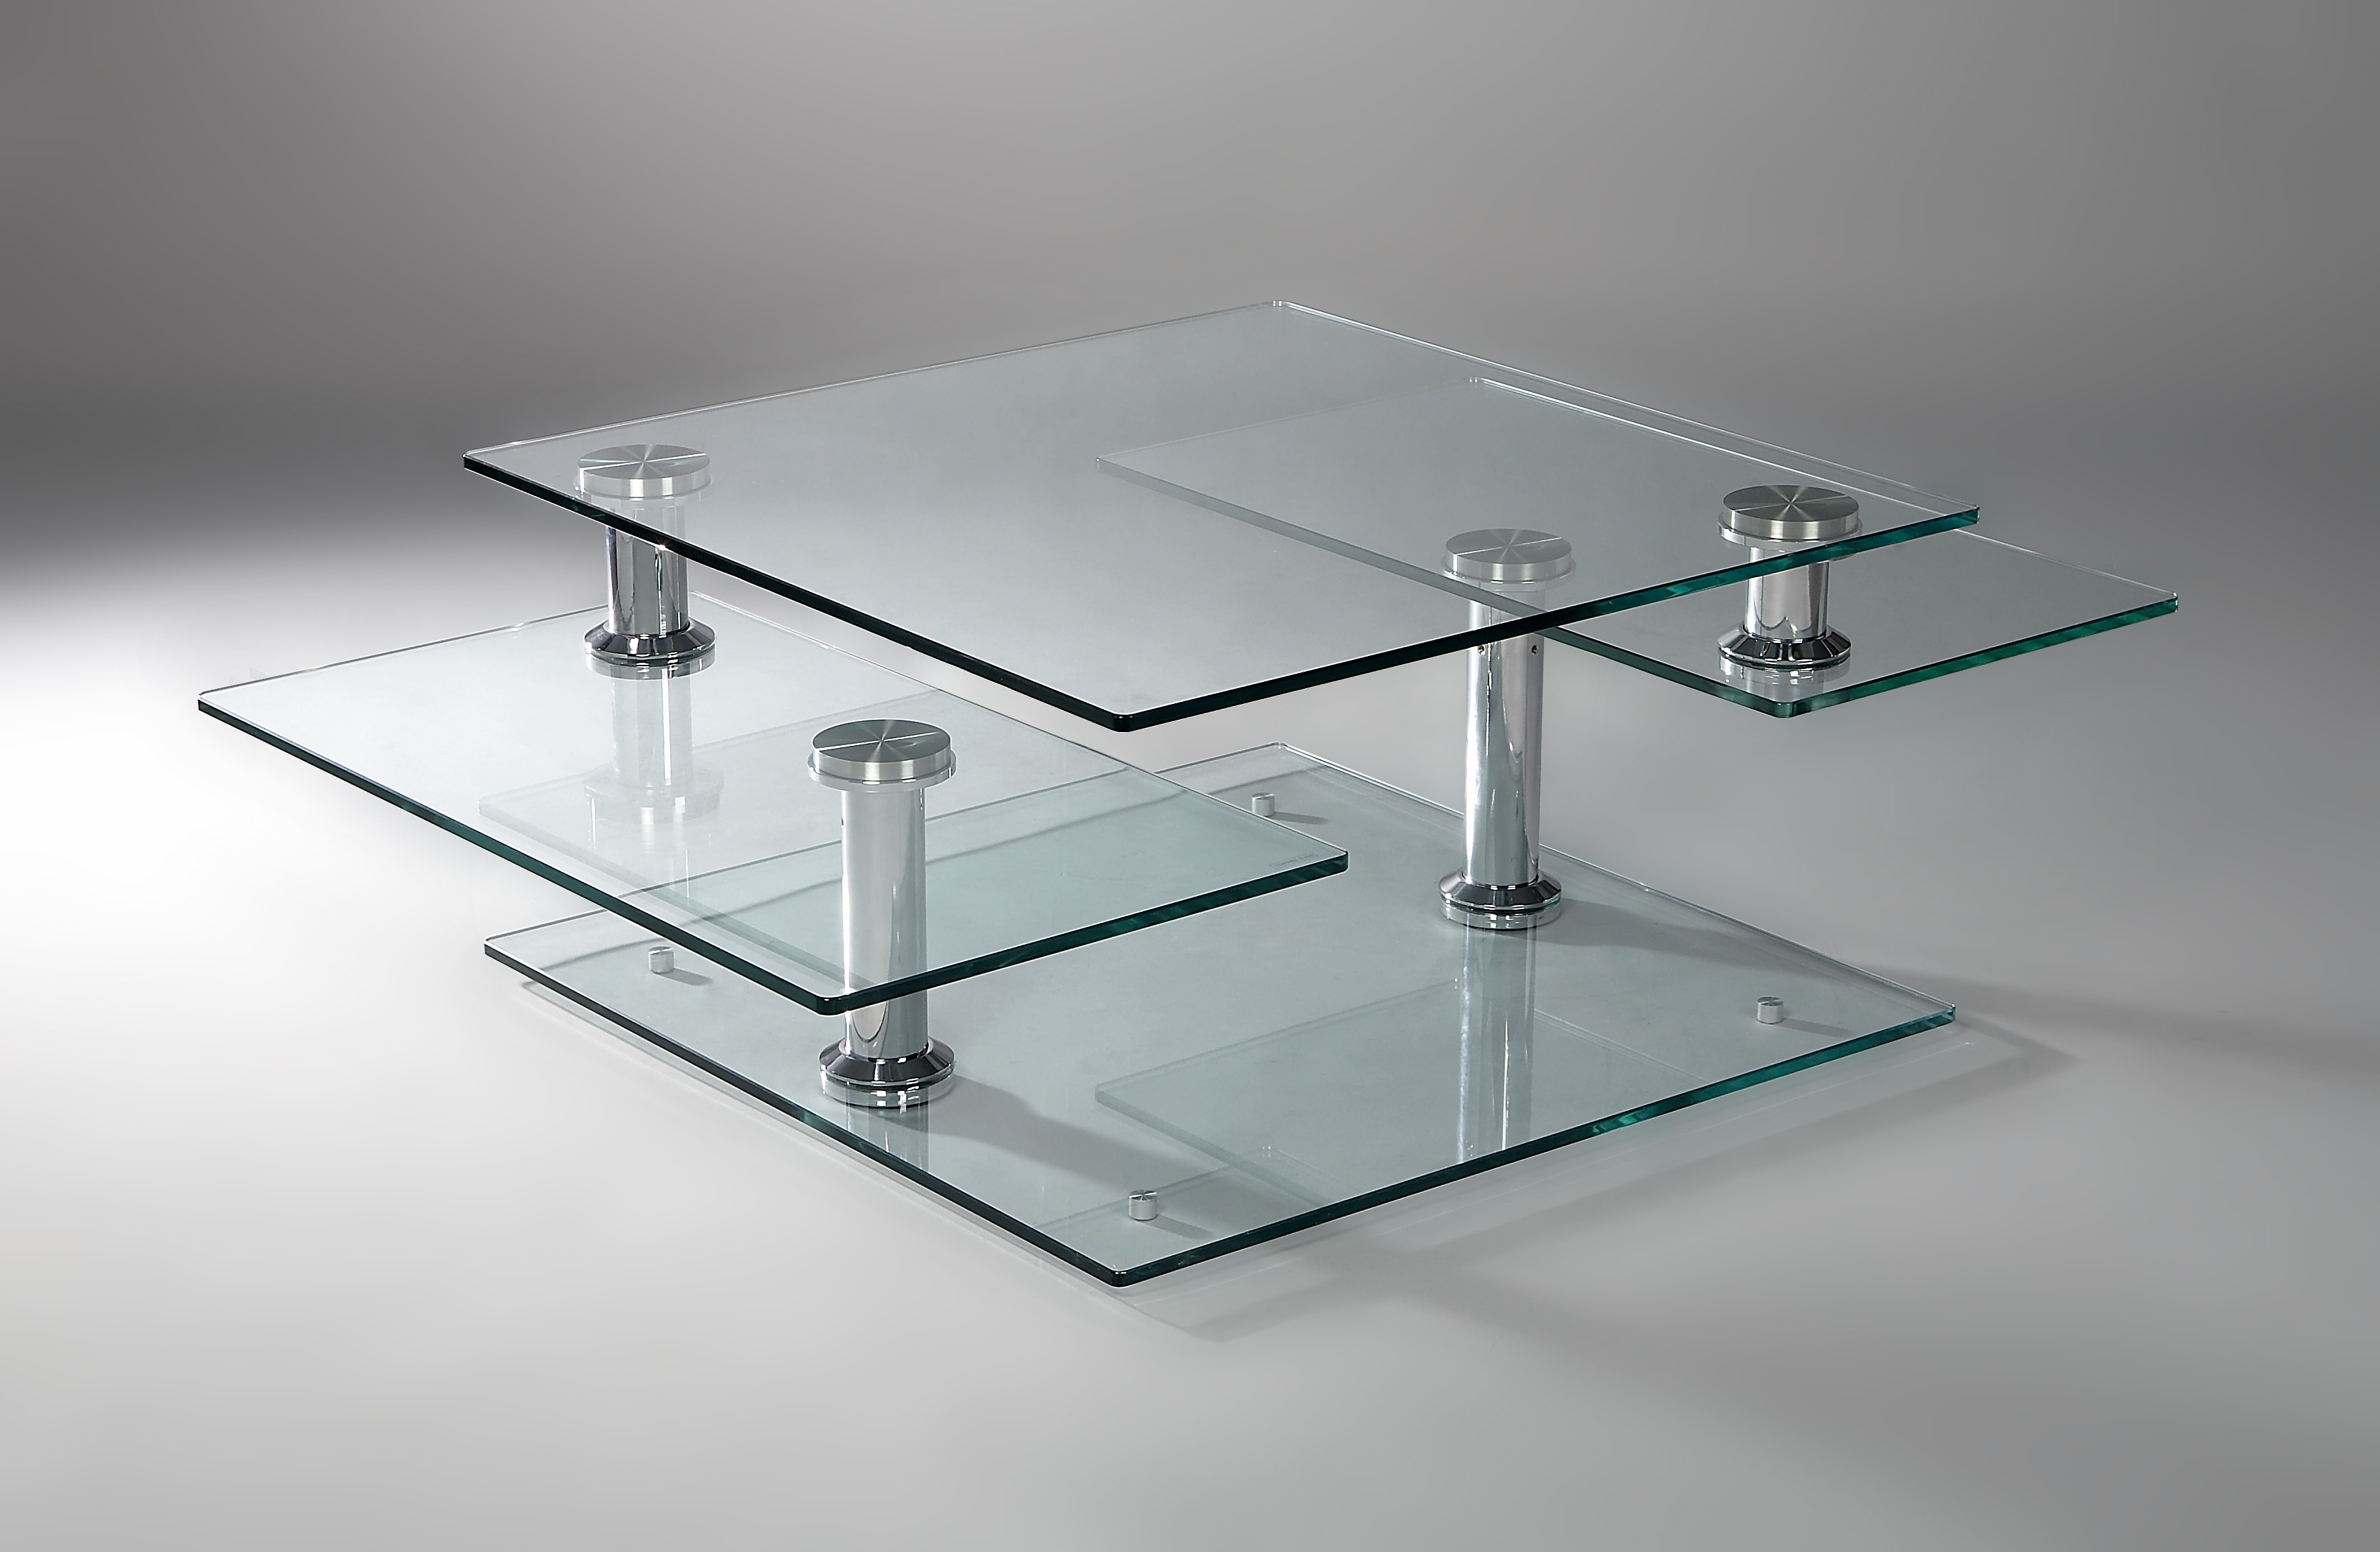 Table basse verre modulable design chateau d 39 ax marseille 13 - Table basse en verre modulable ...